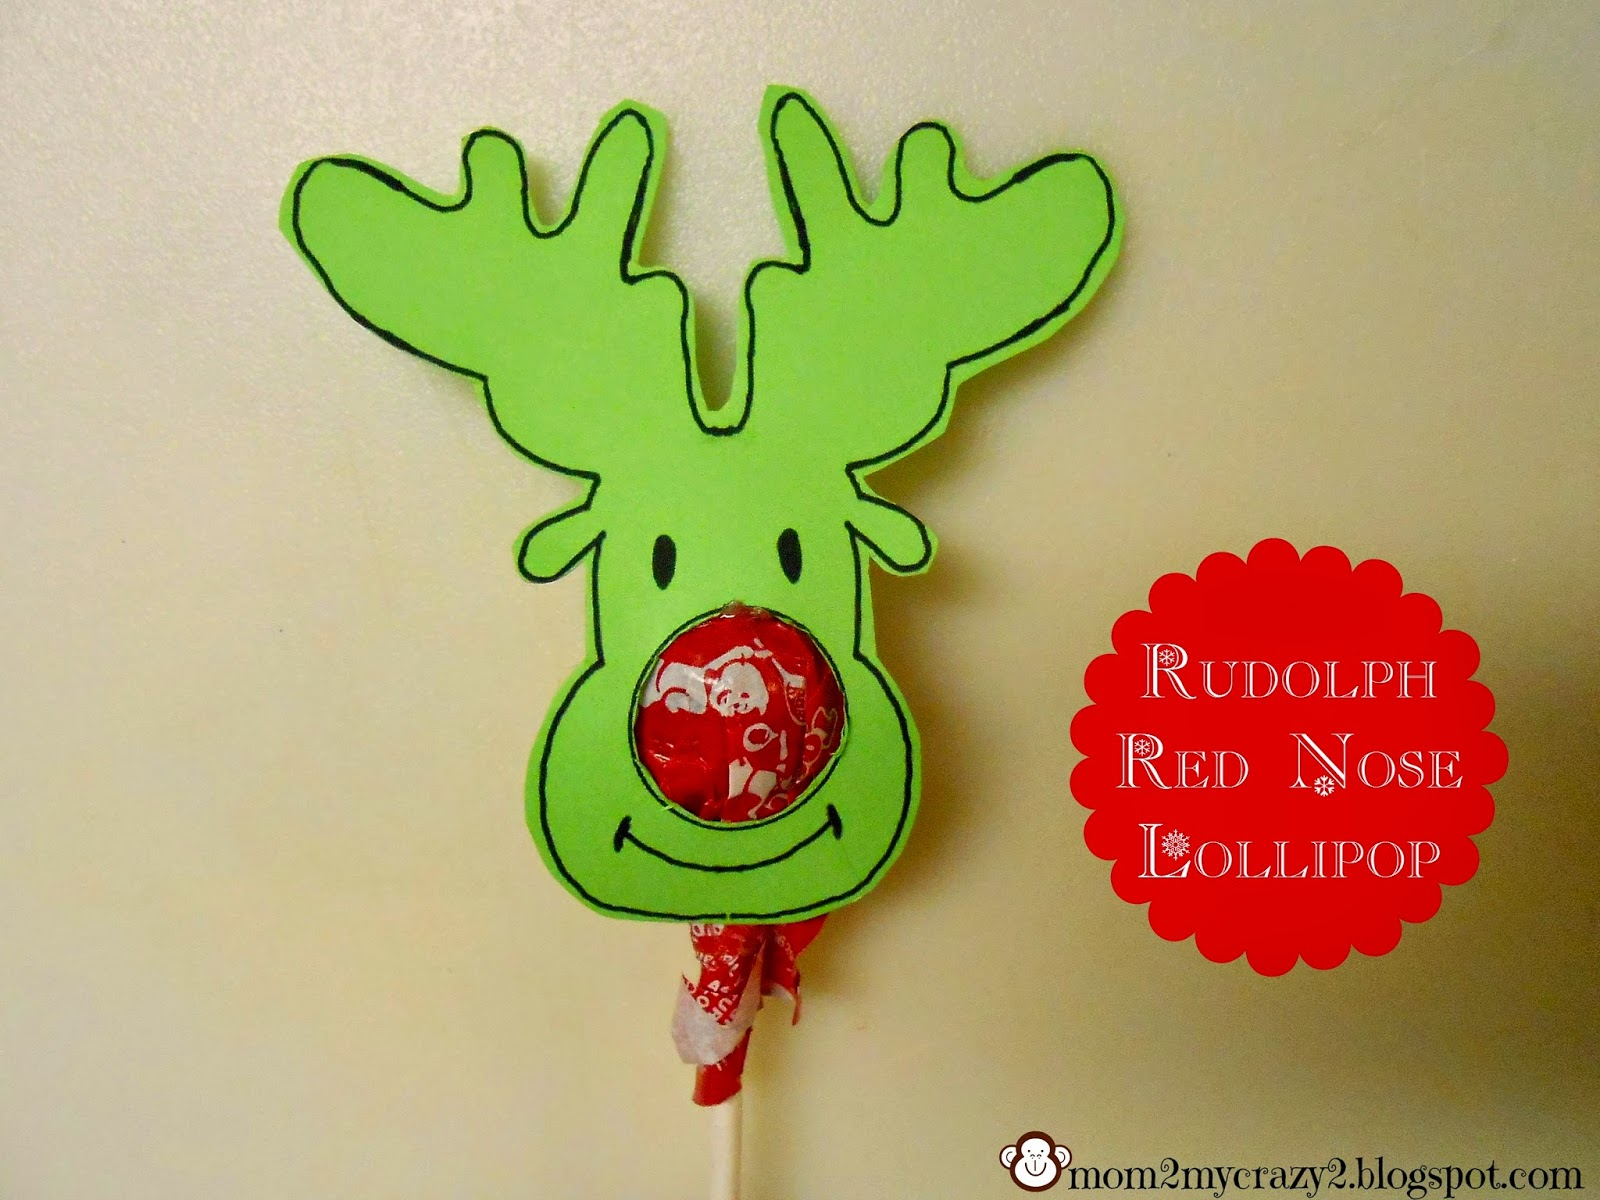 Running Away Ill Help You Pack Rudolph The Red Nose Reindeer